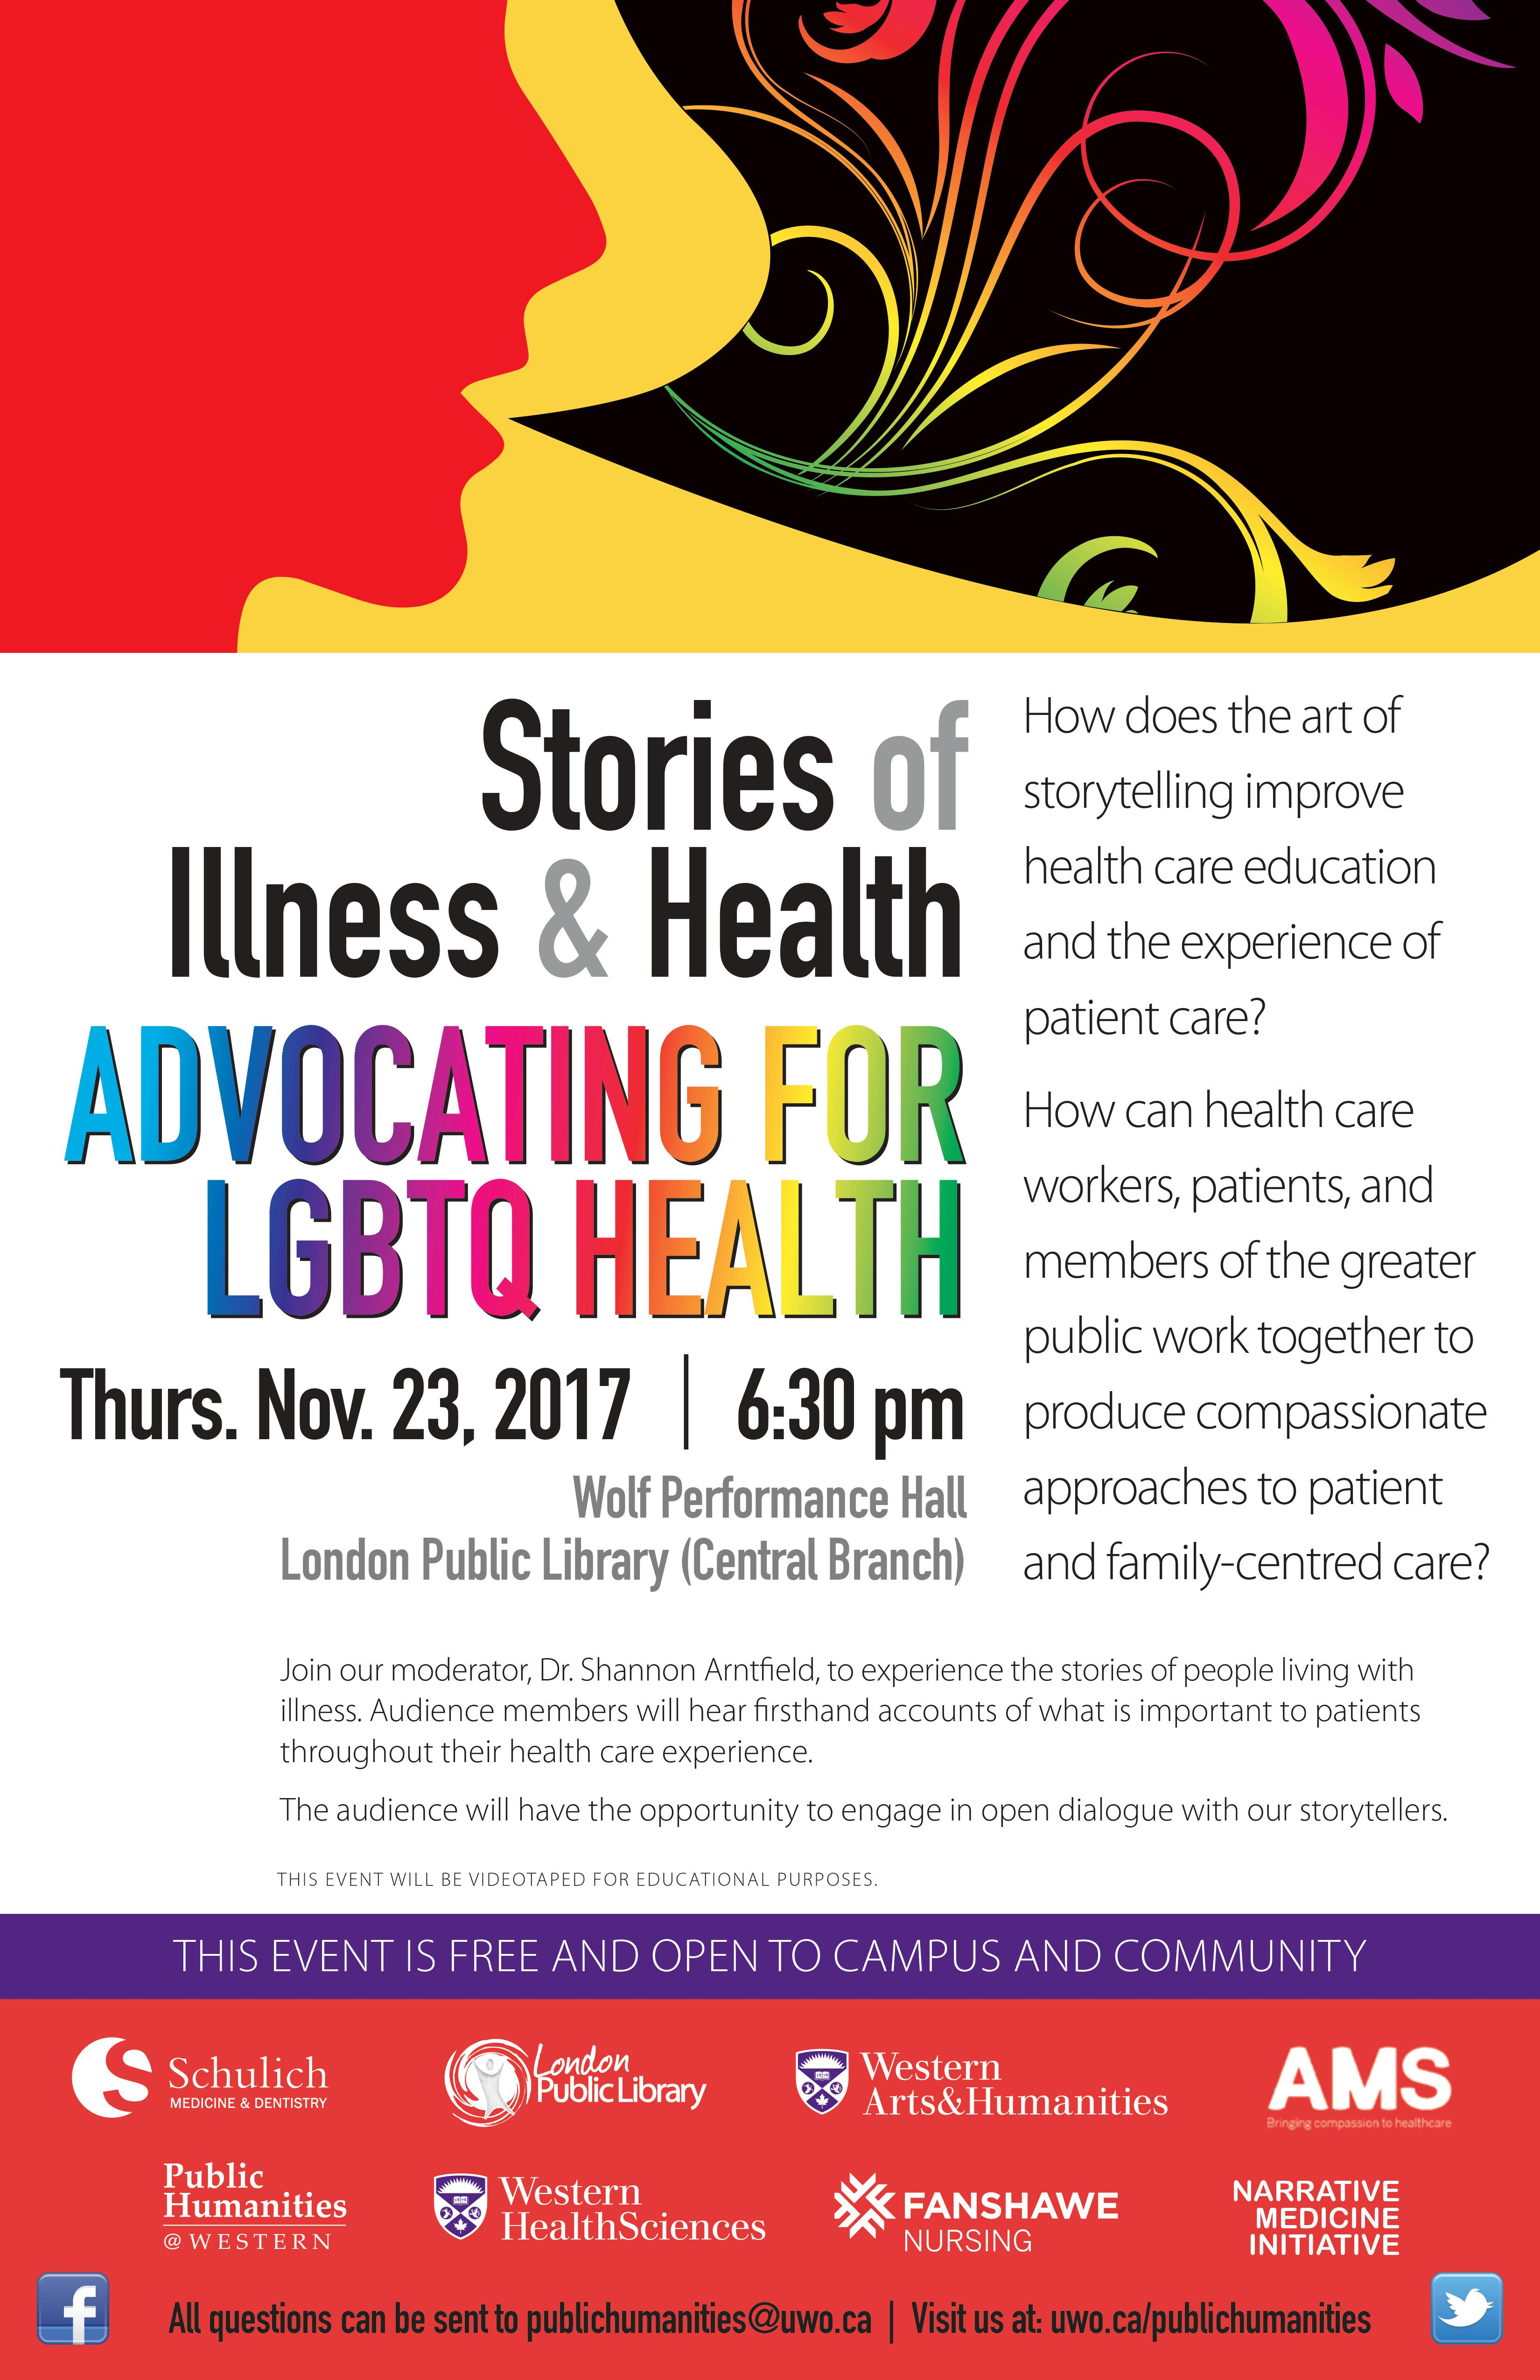 QueerEvents.ca - LGBT Stories of Health - Event Poster